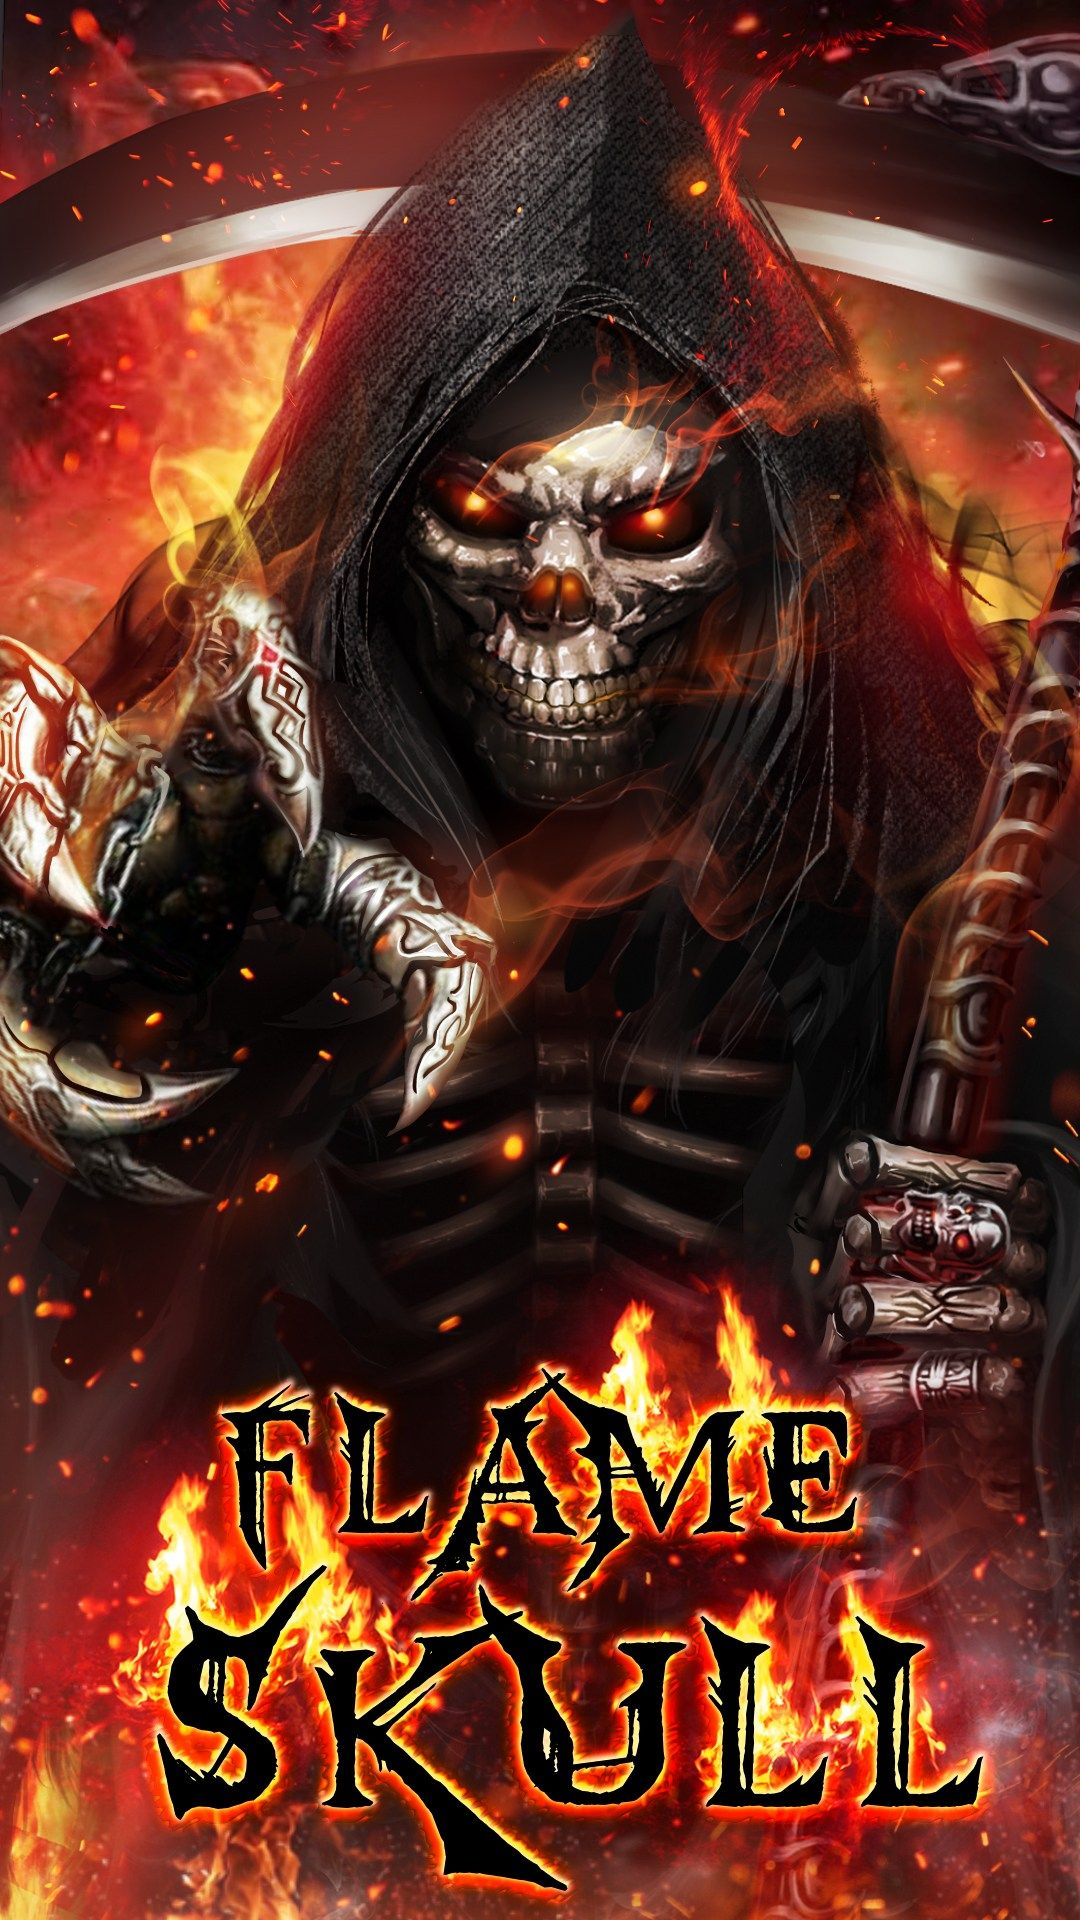 Badass Wallpapers For Android 05 0f 40 Grim Reaper Flame